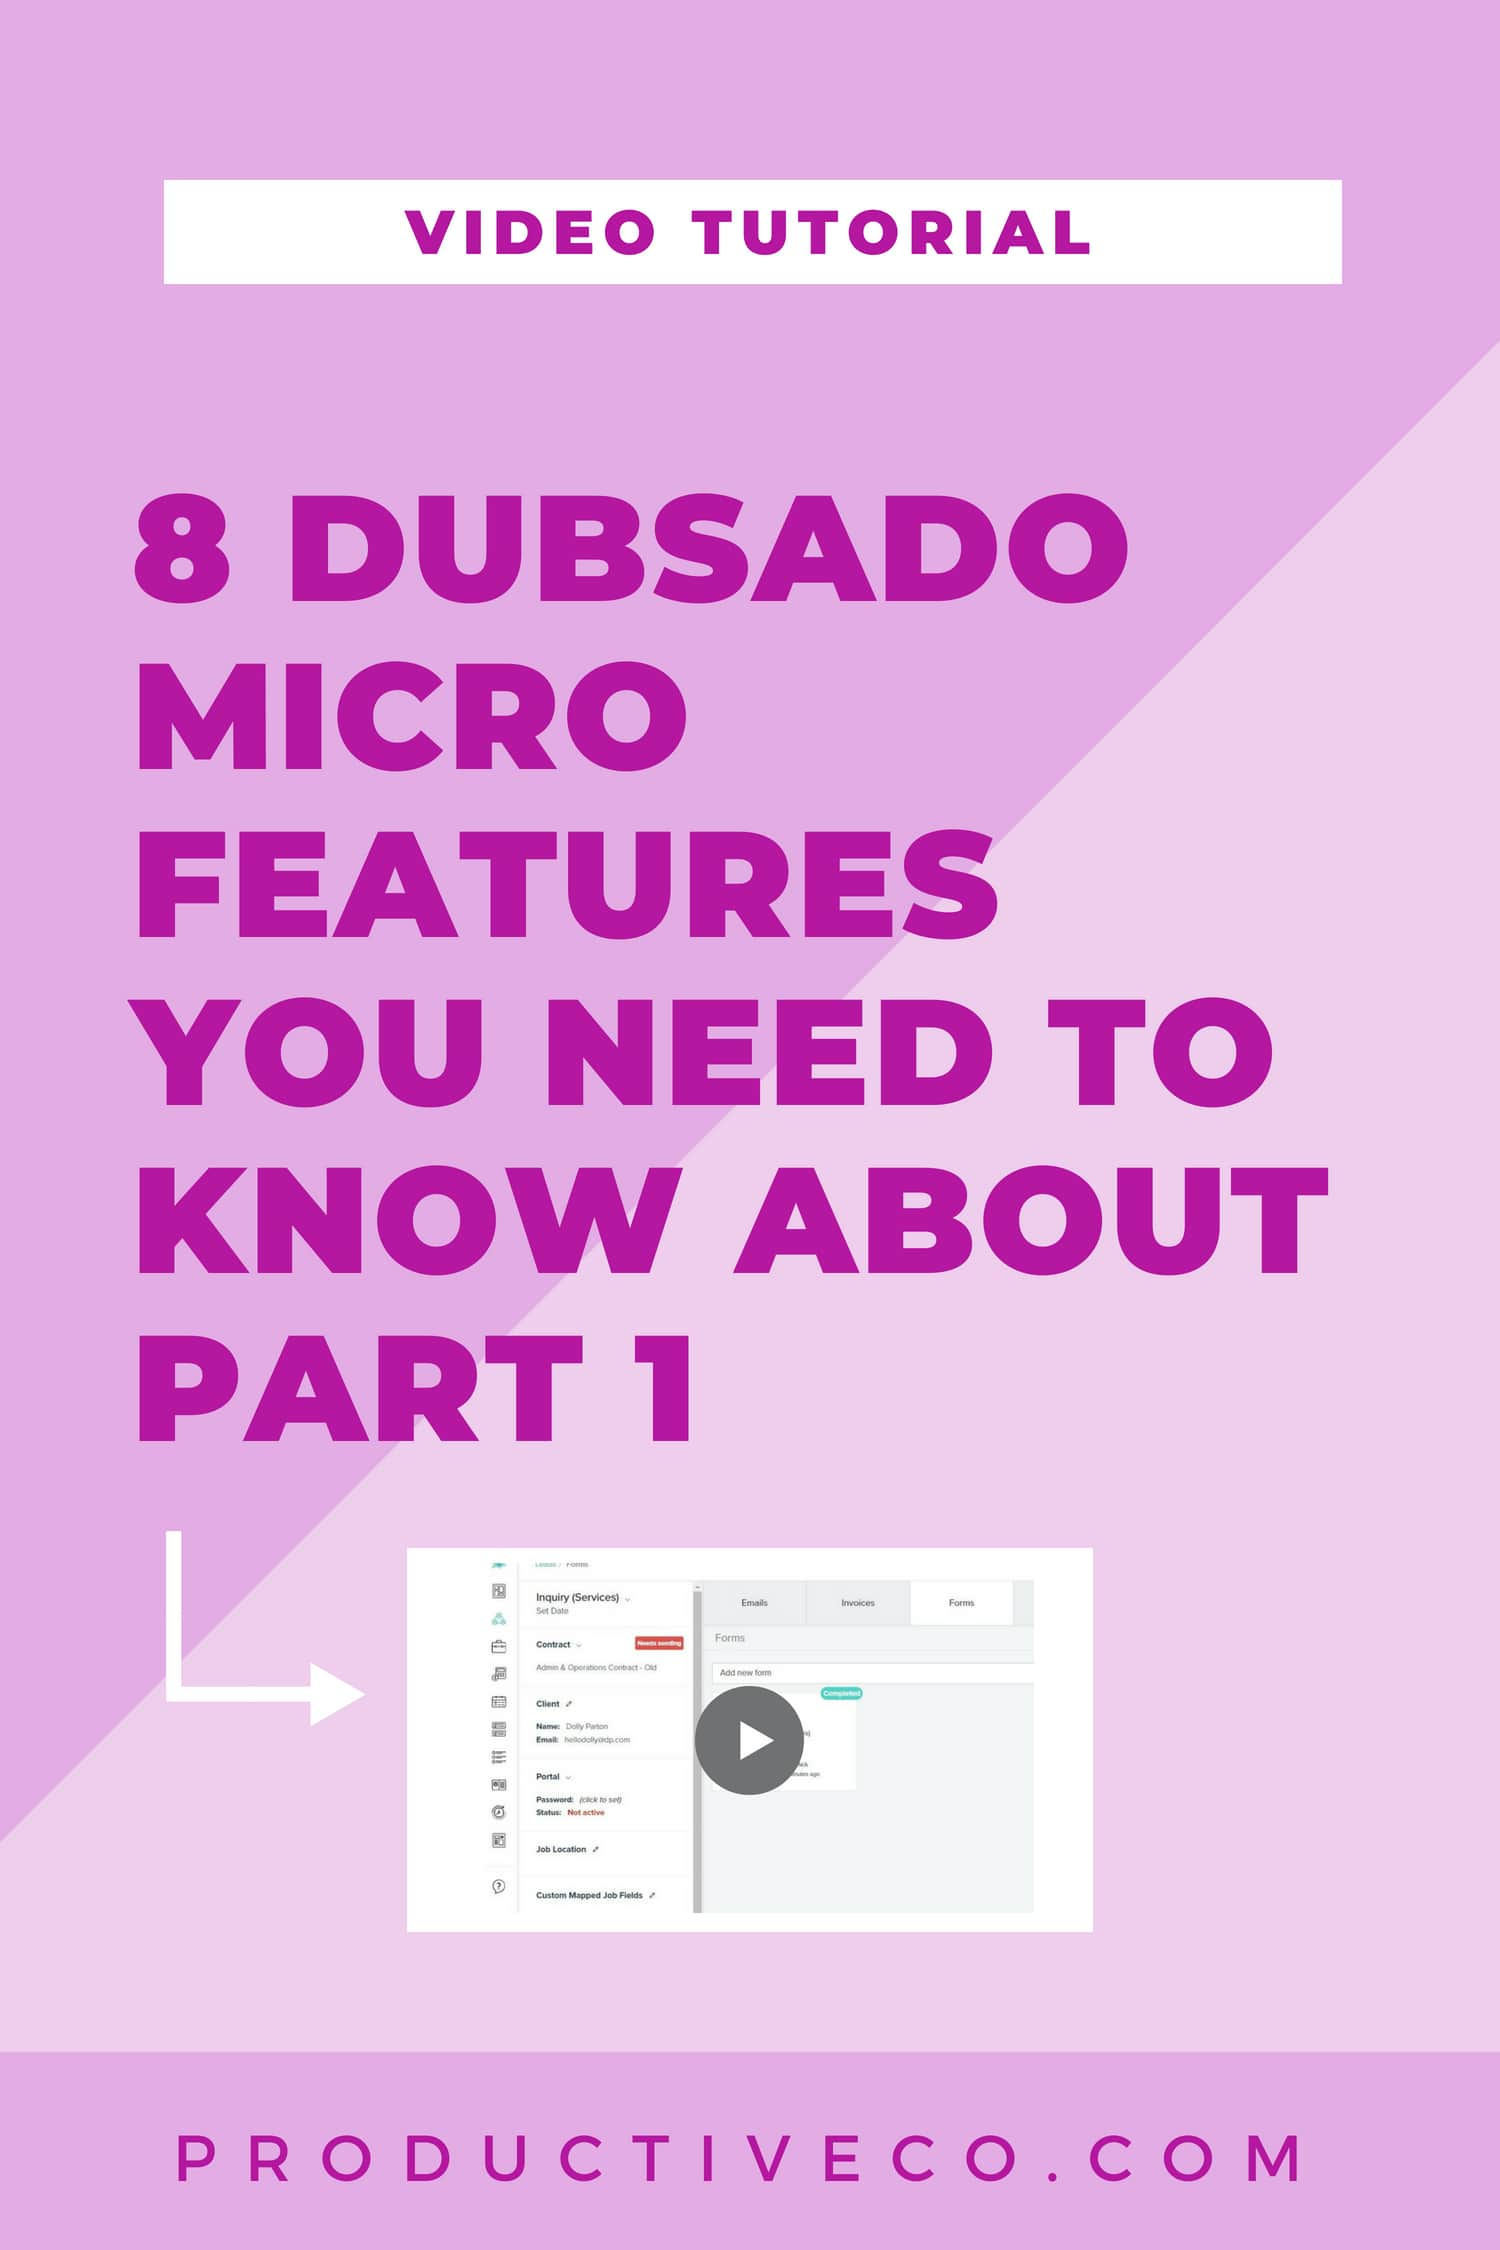 Dubsado features include: email read receipts, lead capture re-directs, allow for tips, client portals, and more.